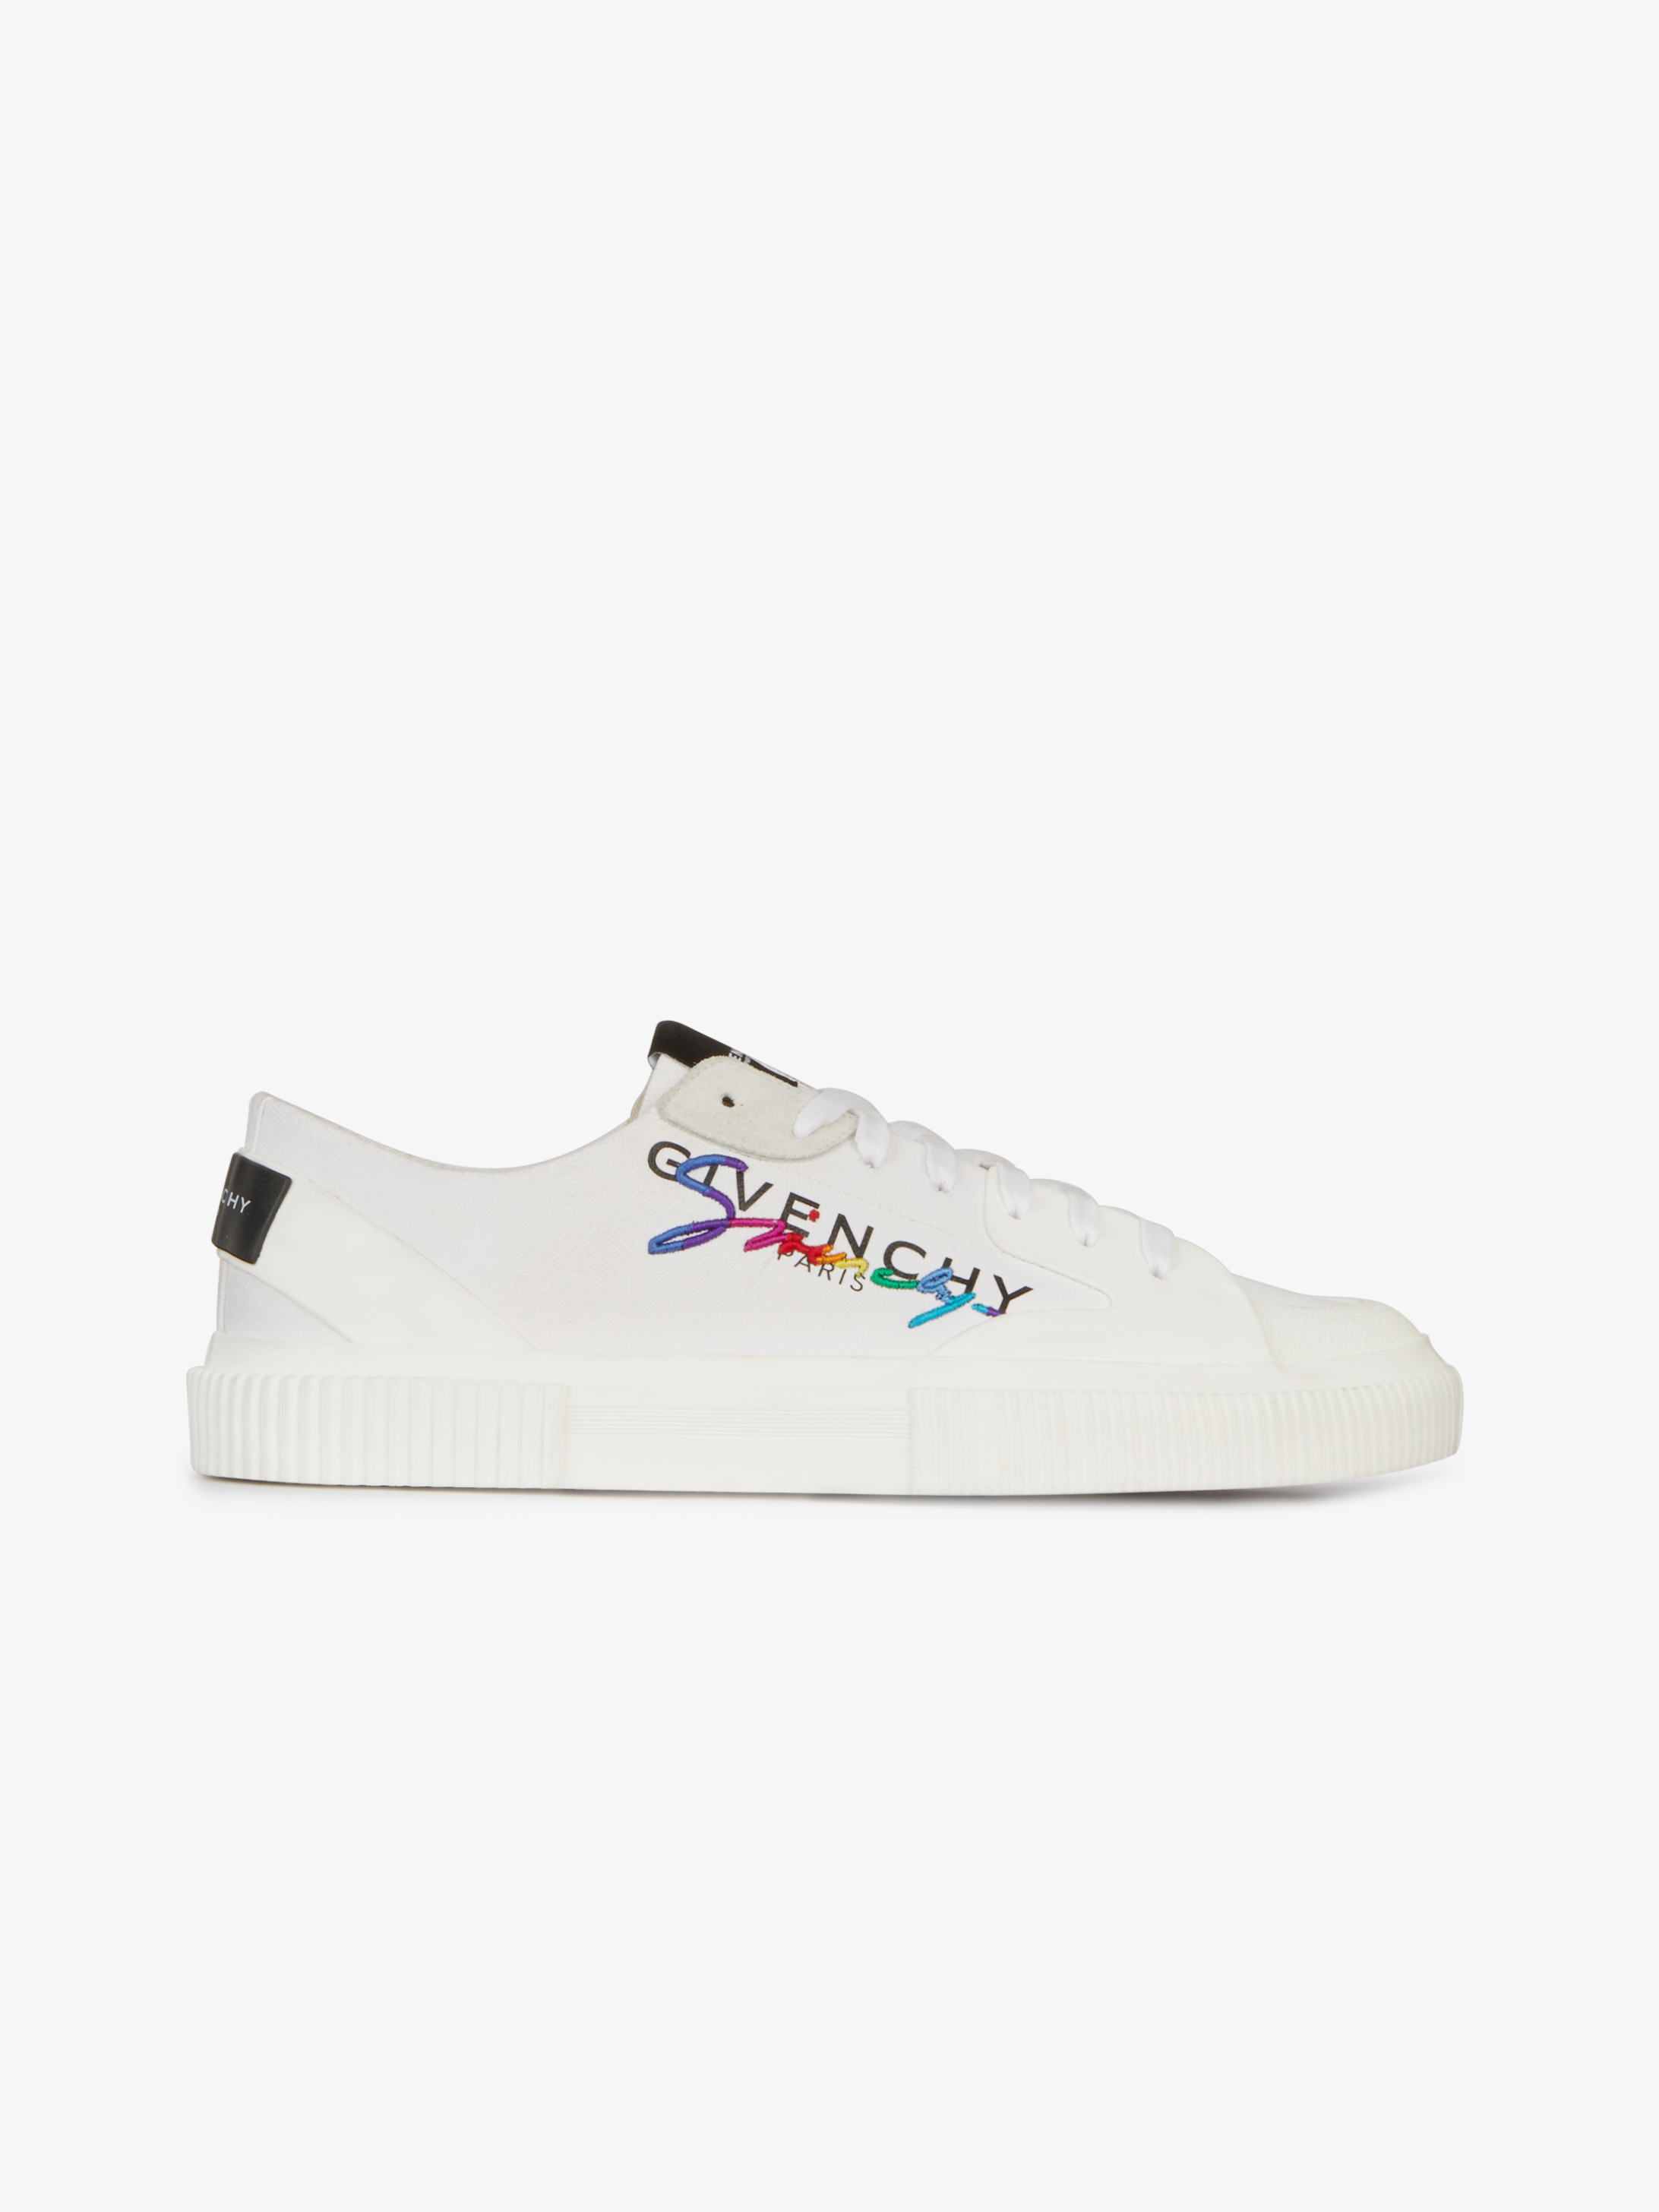 GIVENCHY low sneakers in canvas